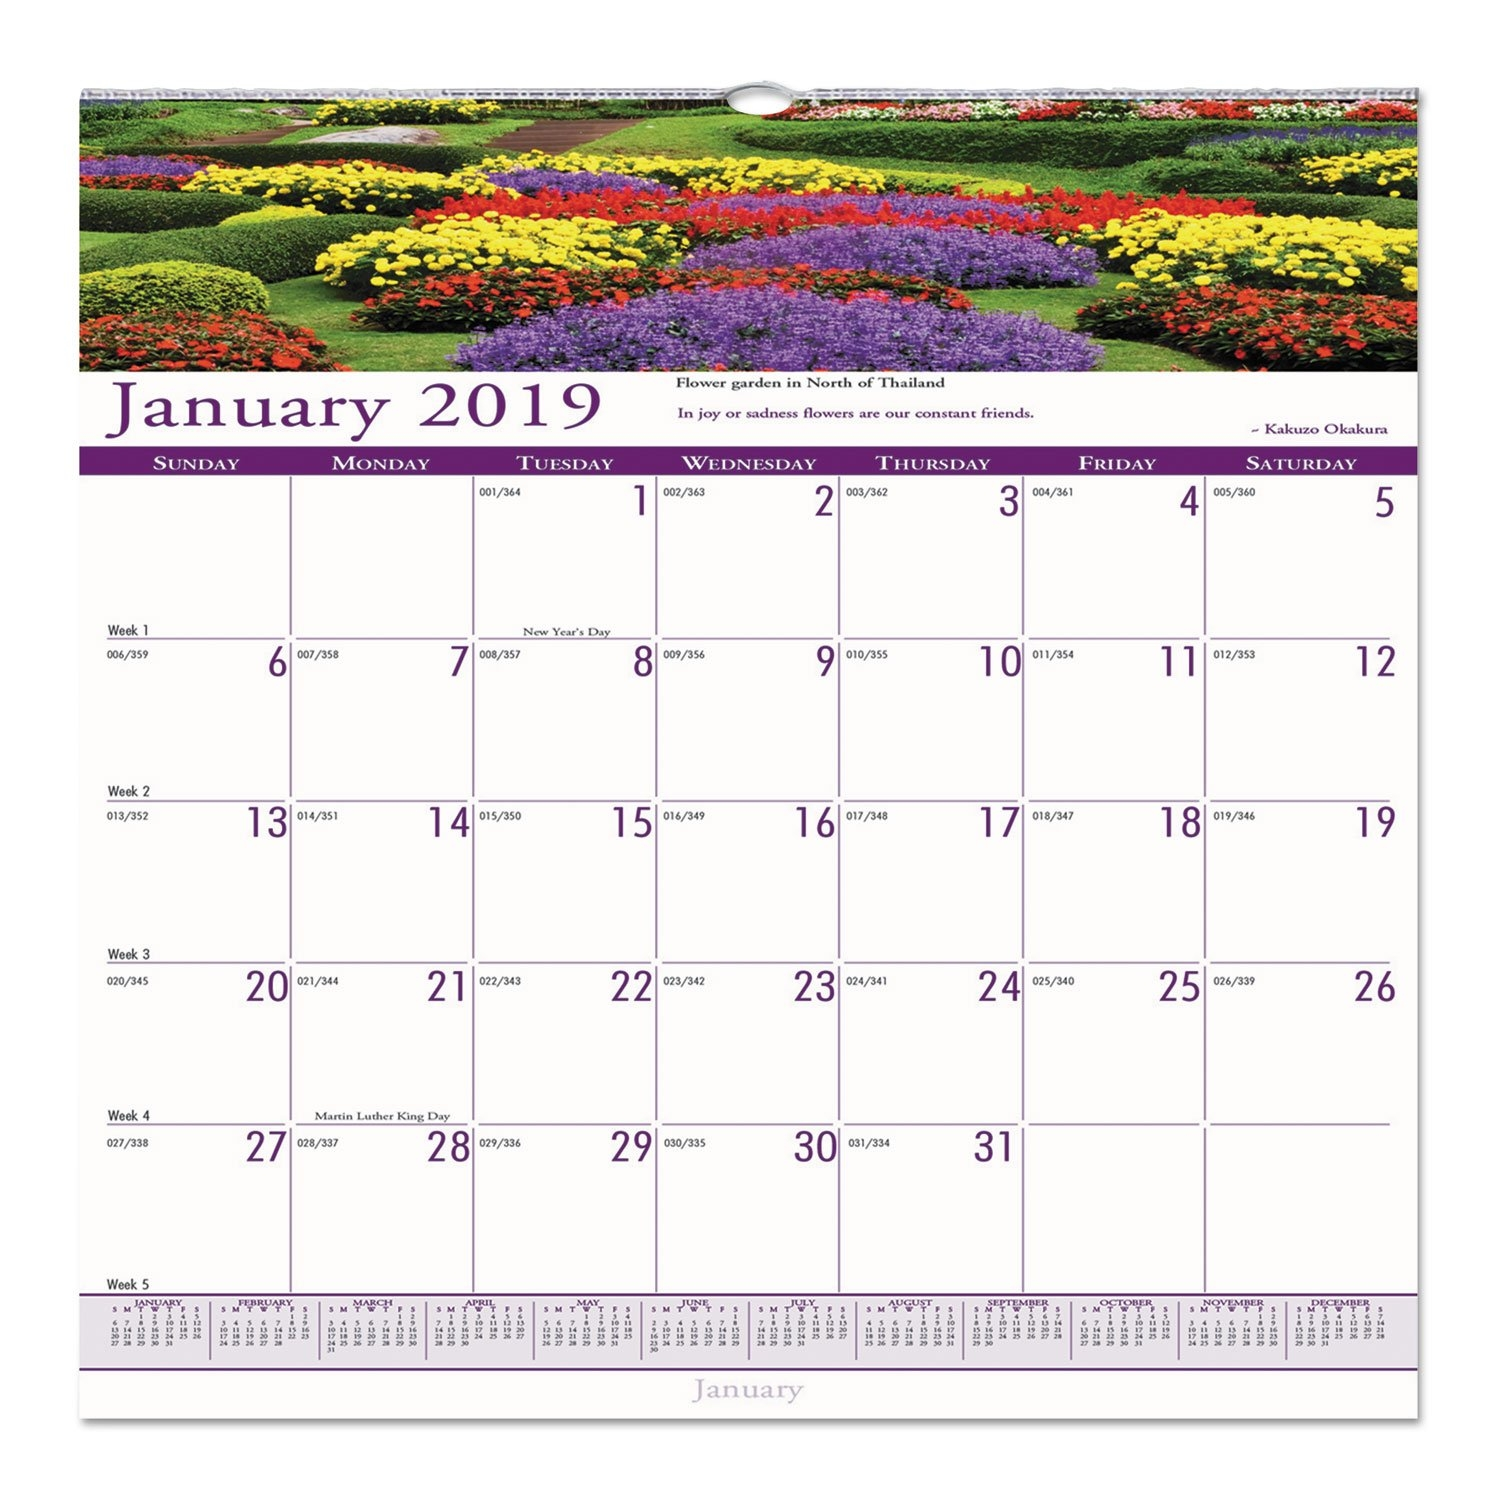 Recycled Gardens Of The World Monthly Wall Calendarhouse Of 007 Calendar 2019